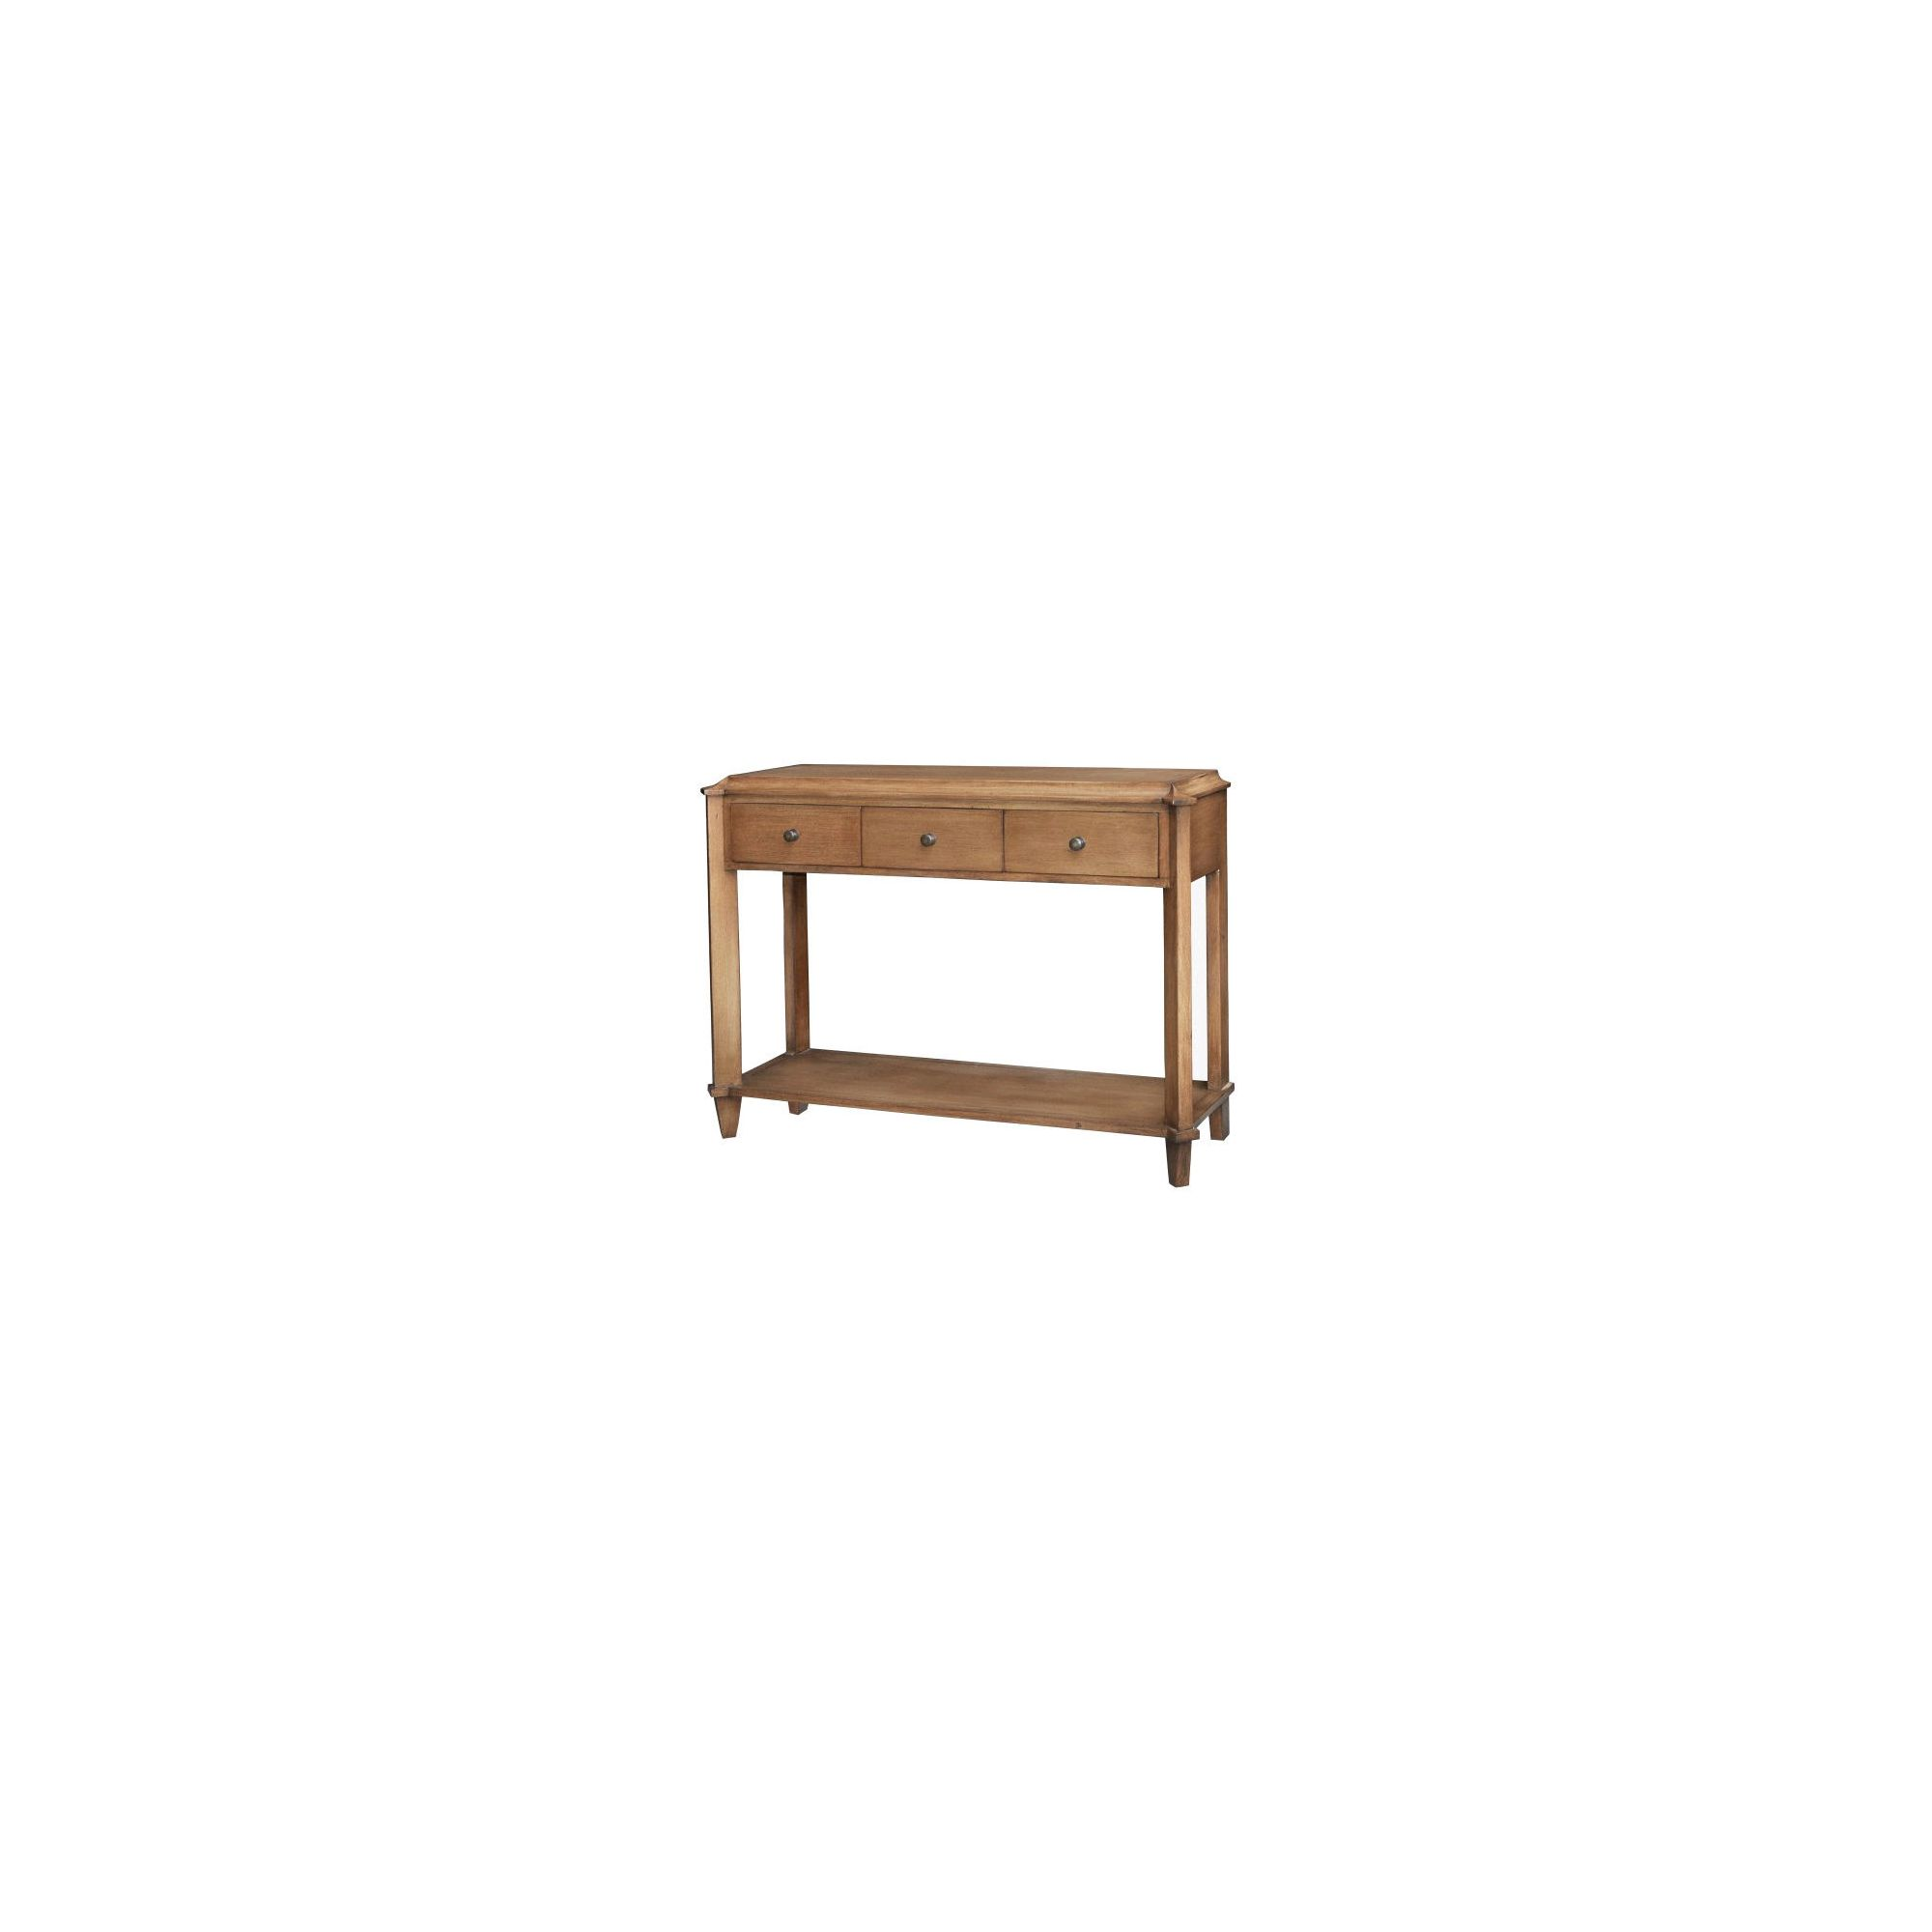 Lock stock and barrel Shell Knowle Console Table in Mahogany at Tescos Direct